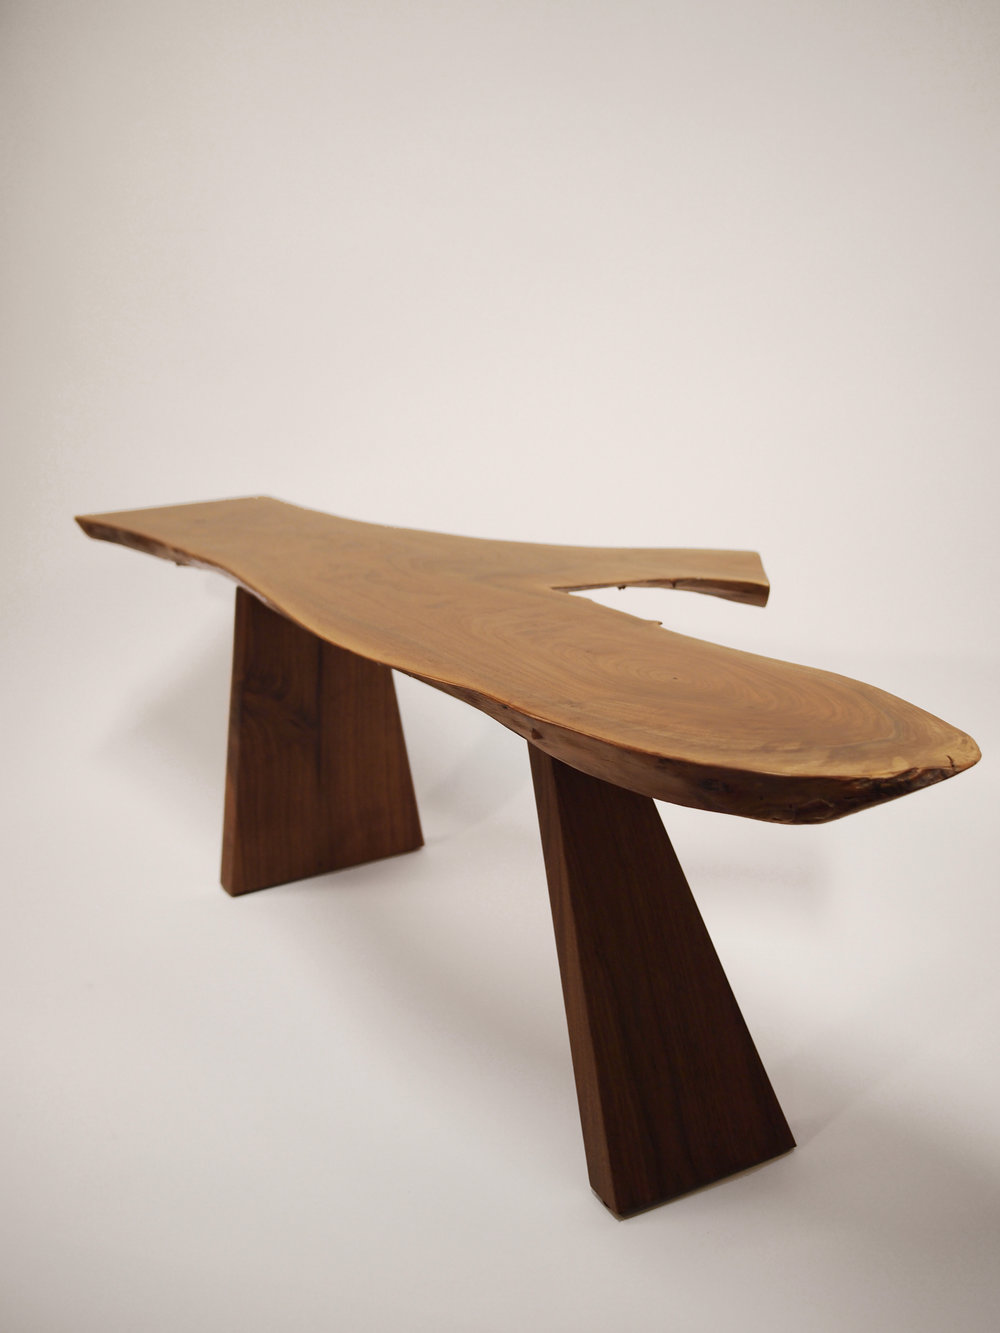 Laurens Cotten wood table.jpg